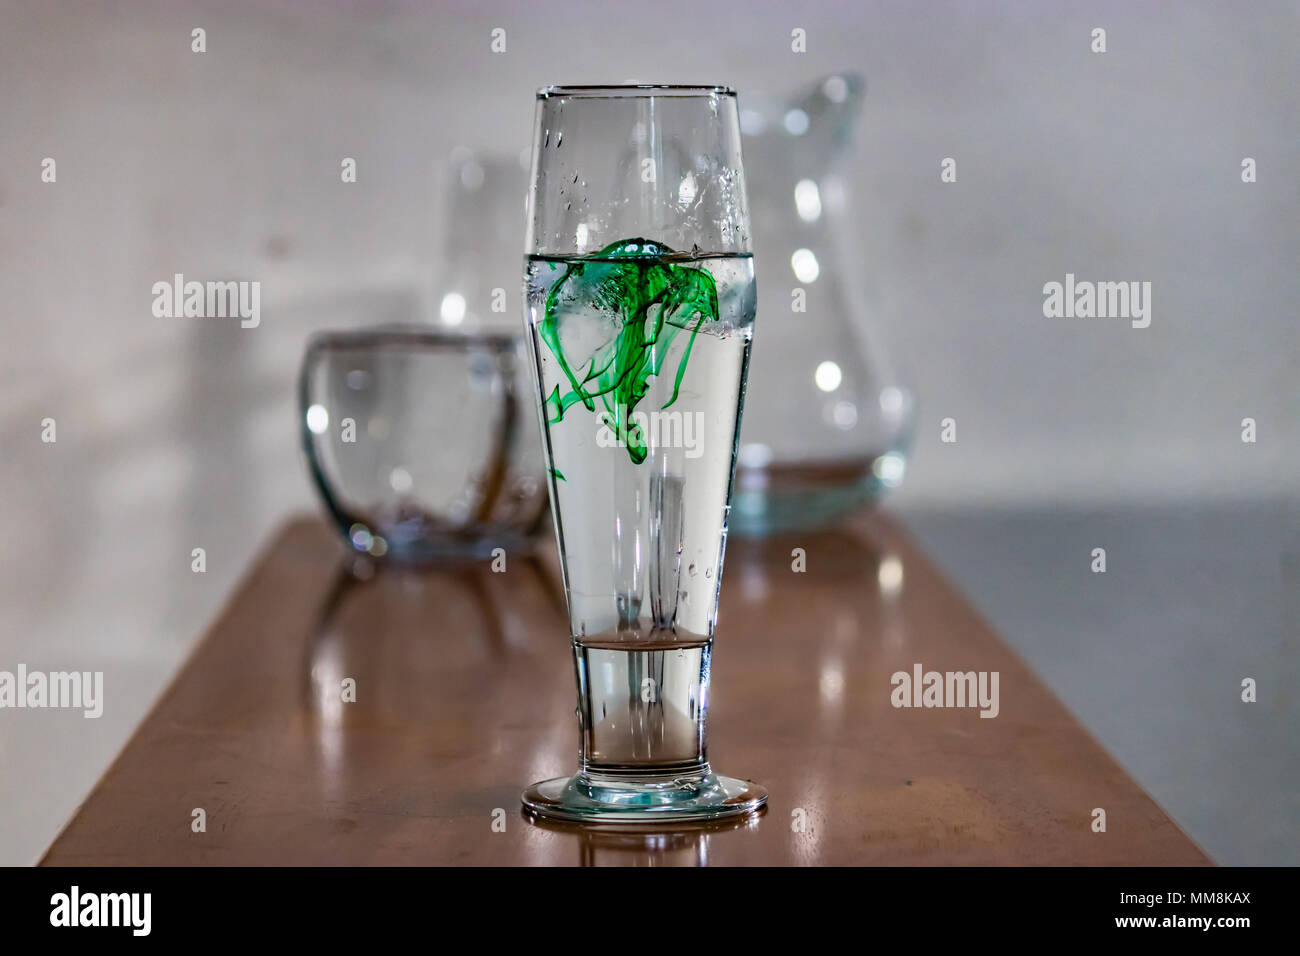 Food Coloring In Water Glass Stockfotos & Food Coloring In Water ...